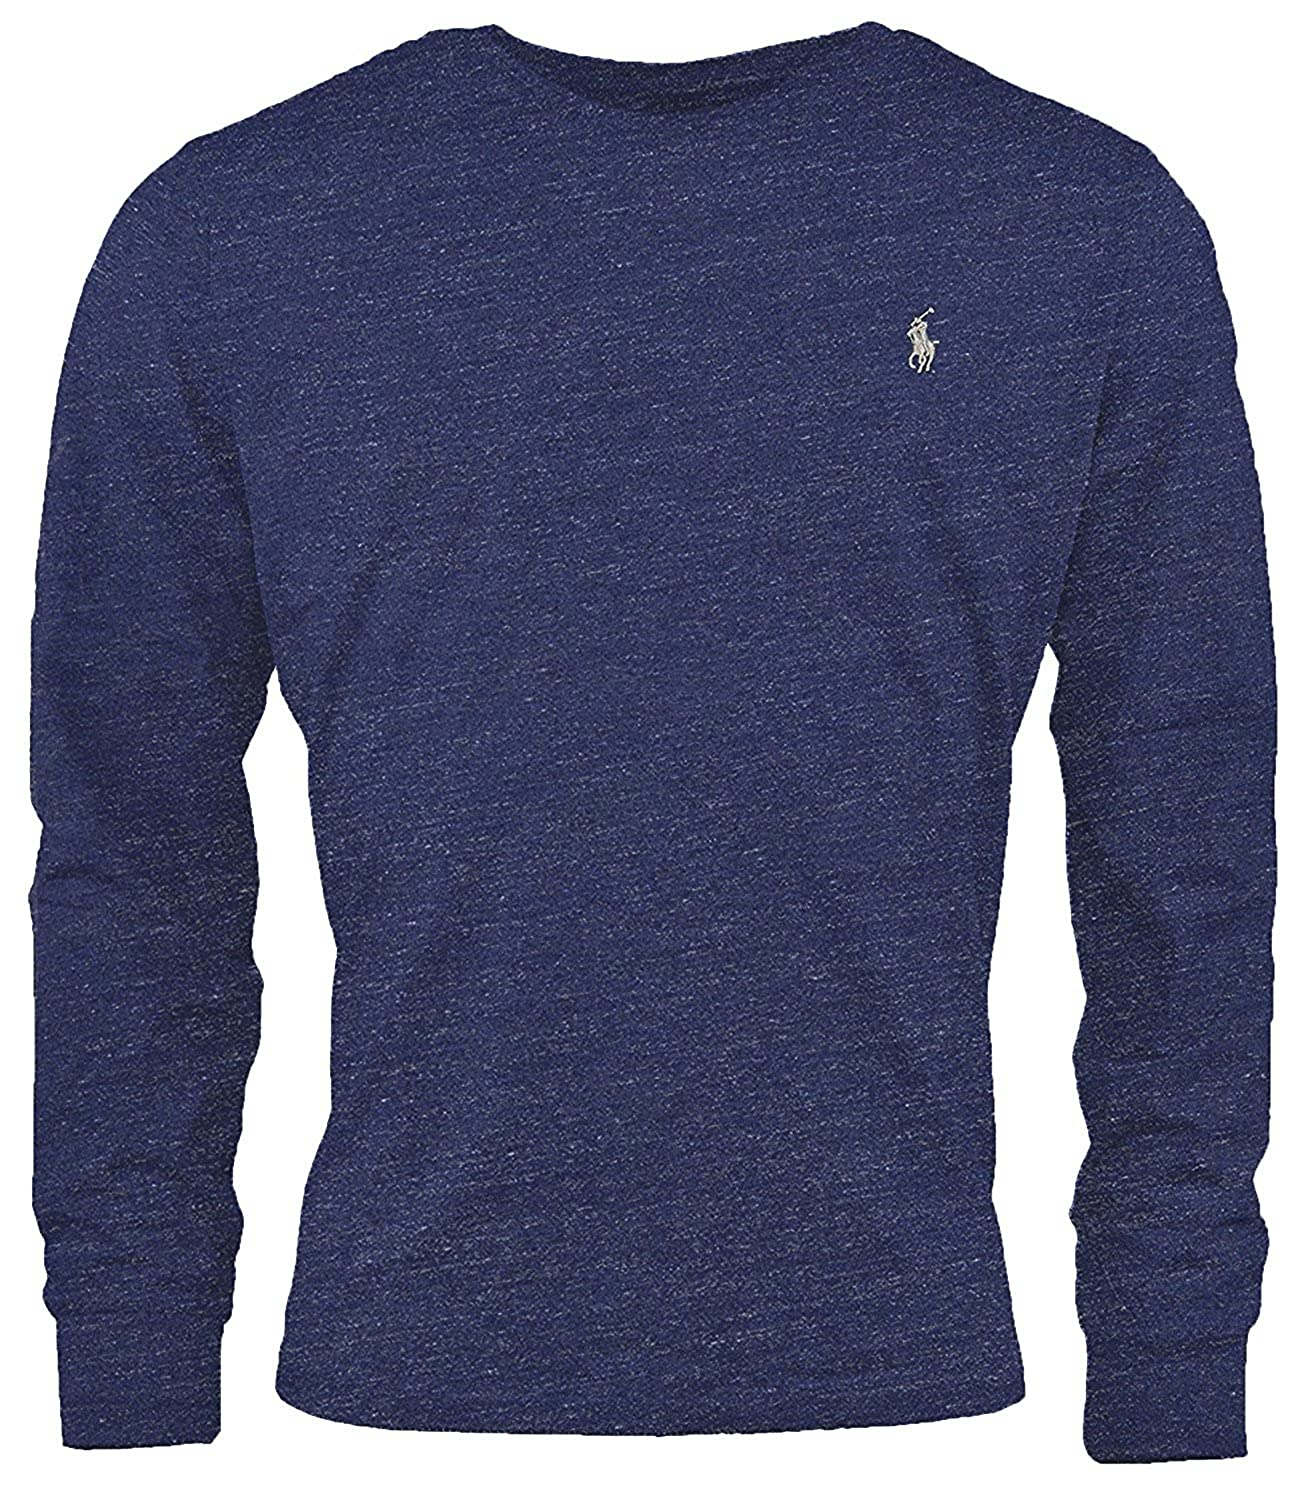 110790fbdd1b0 Polo Ralph Lauren Mens Big & Tall Long Sleeve Crew Neck T-Shirt | Amazon.com